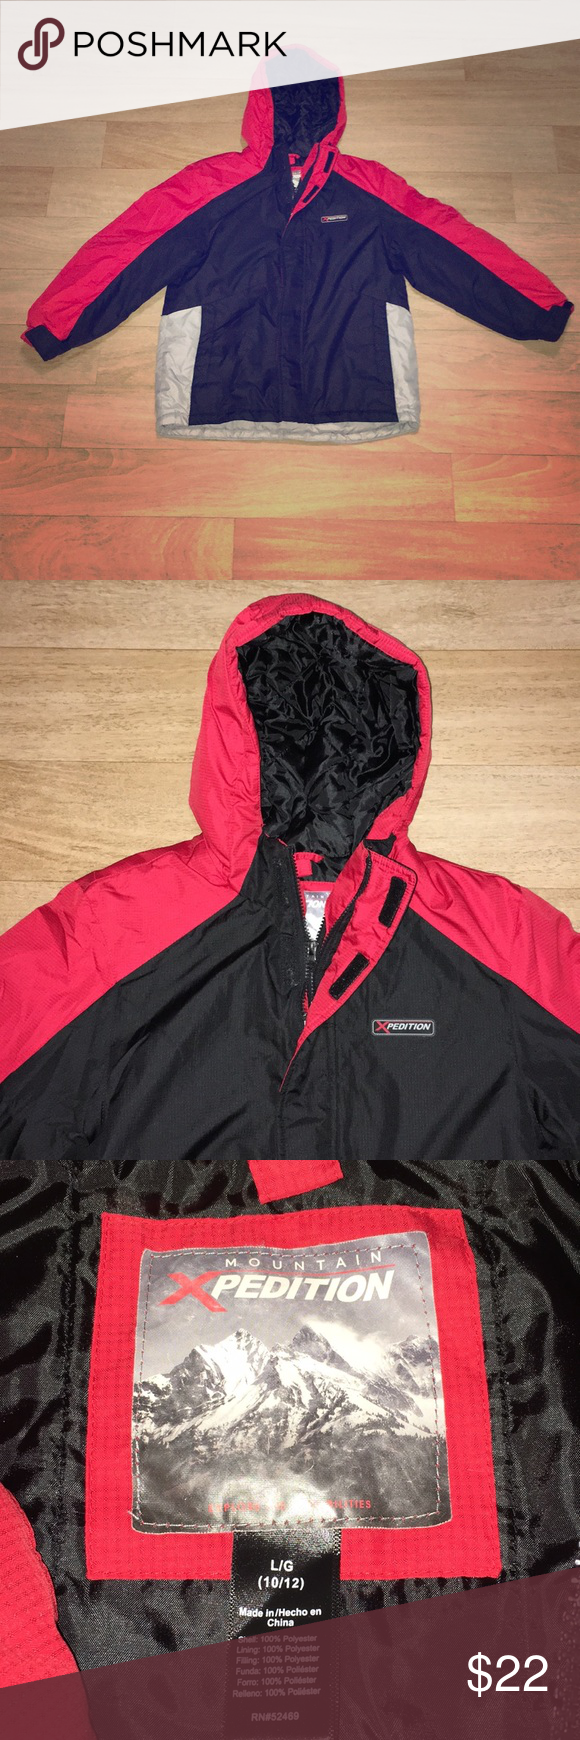 Mountain Xpedition Winter Jacket 10 12 Jackets Winter Jackets Clothes Design [ 1740 x 580 Pixel ]